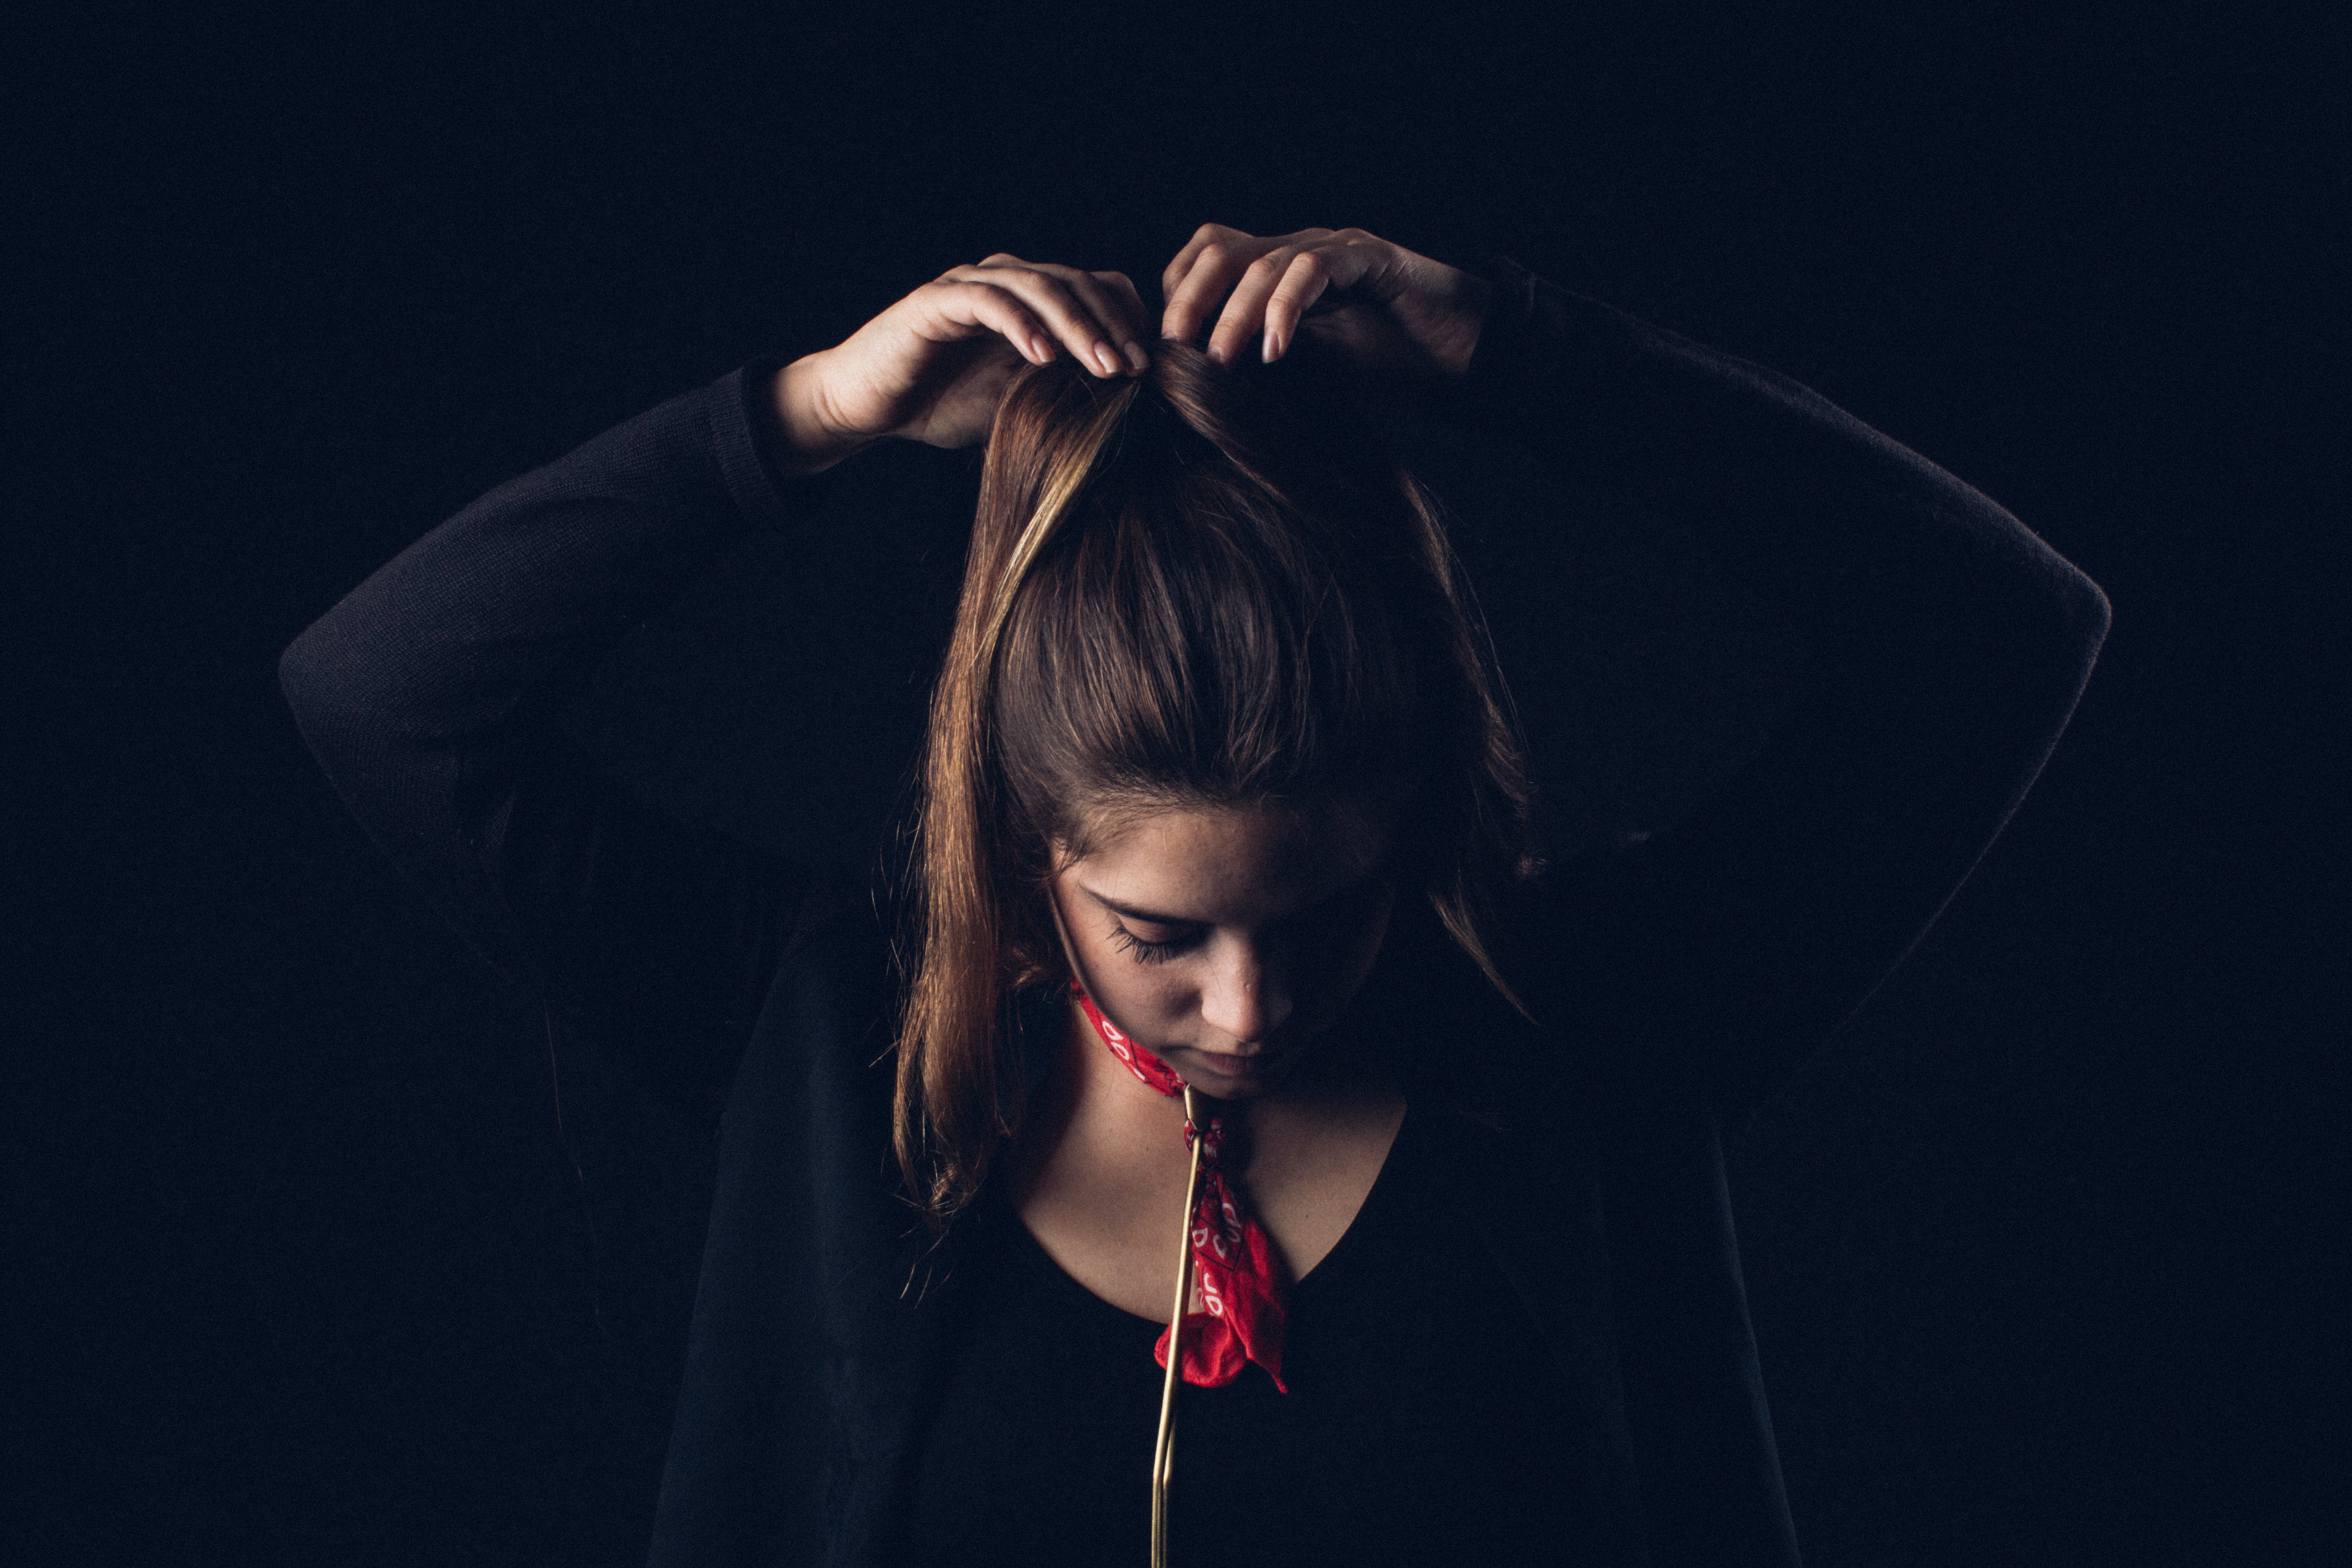 A woman wearing a red bandana and black shirt fixes her ponytail against a black background